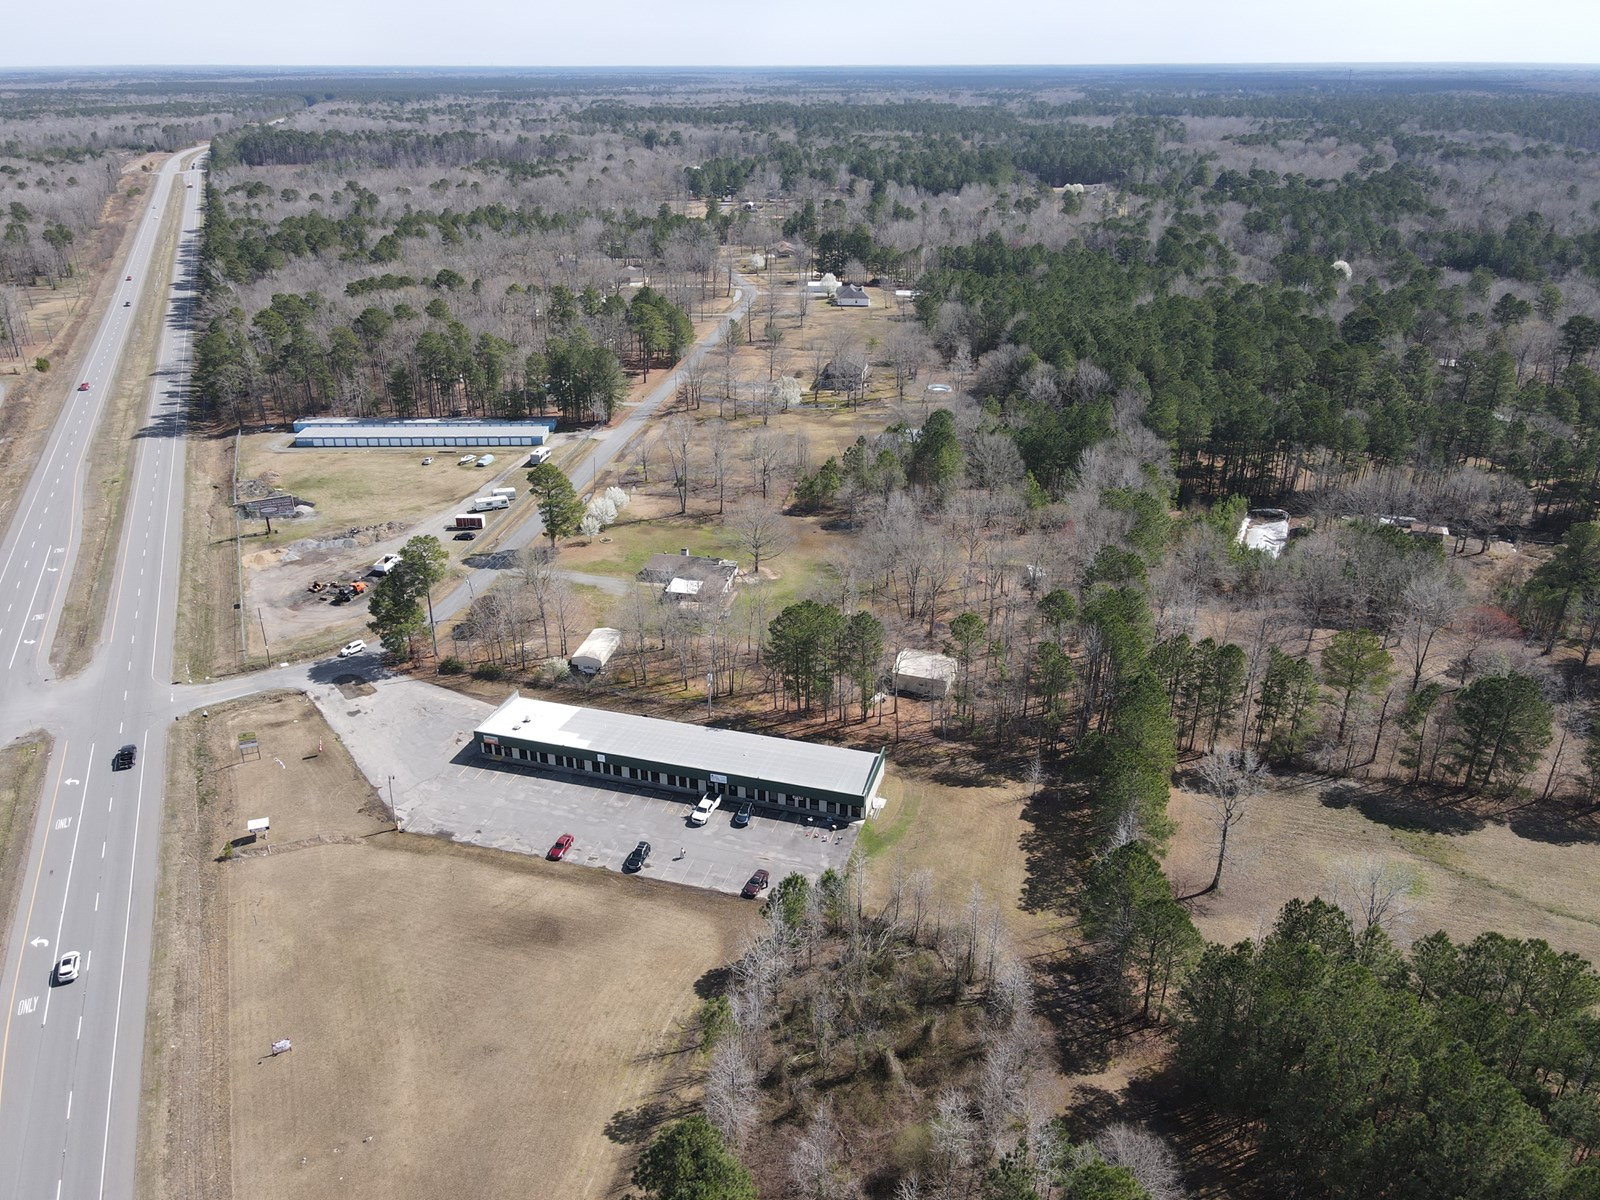 Business & Commercial Building For Sale in Saline County, AR